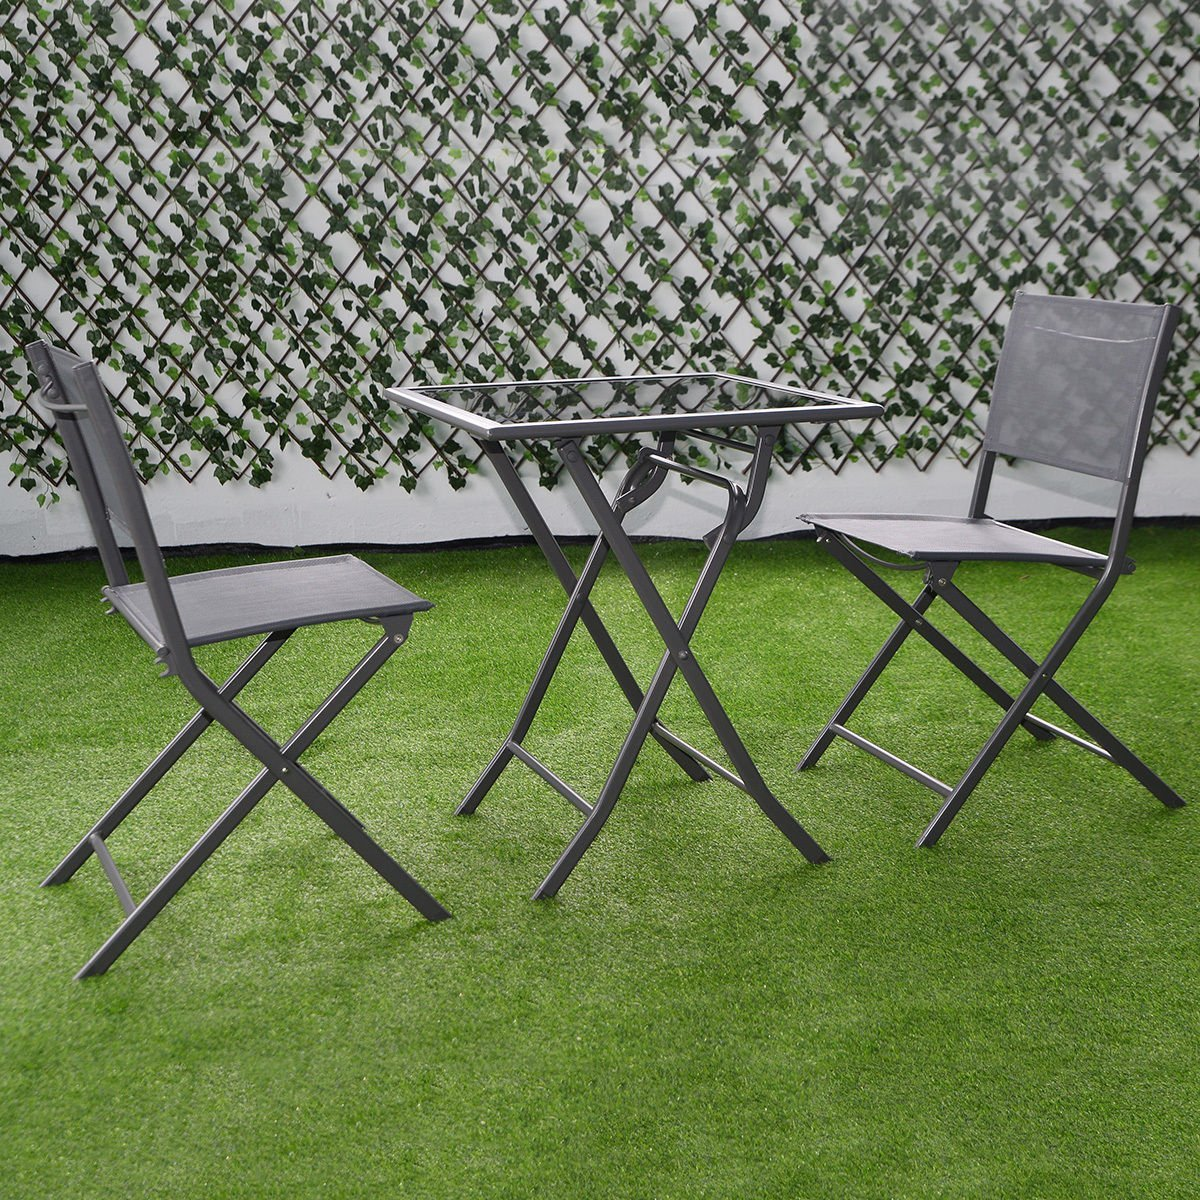 Amazon.com Giantex 3 Pcs Bistro Set Garden Backyard Table Chairs Outdoor Patio Furniture Folding Garden \u0026 Outdoor  sc 1 st  Amazon.com : backyard table set - pezcame.com